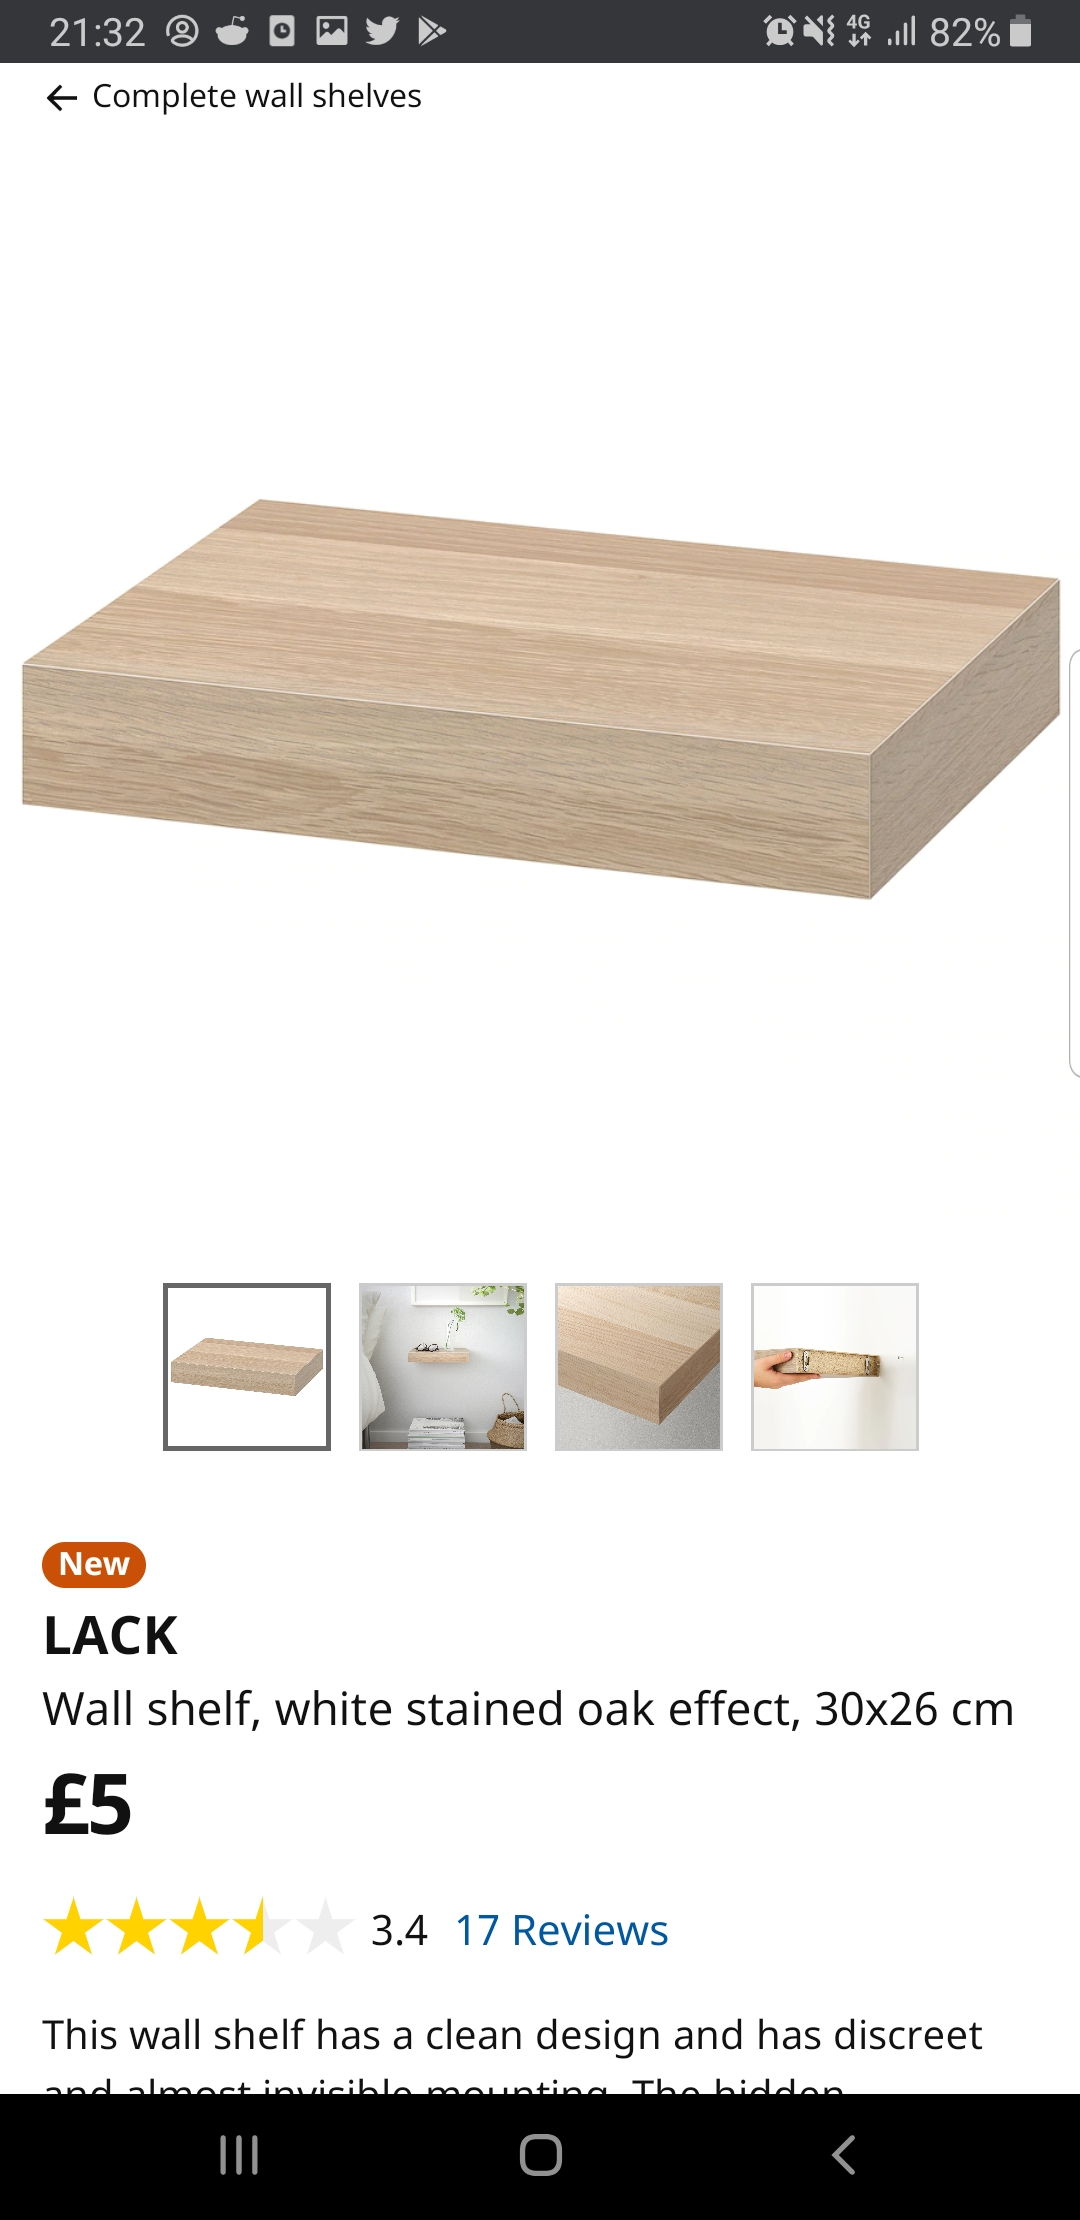 Is The Shelf Hollow Or Solid Want To Cut Down To Only Make